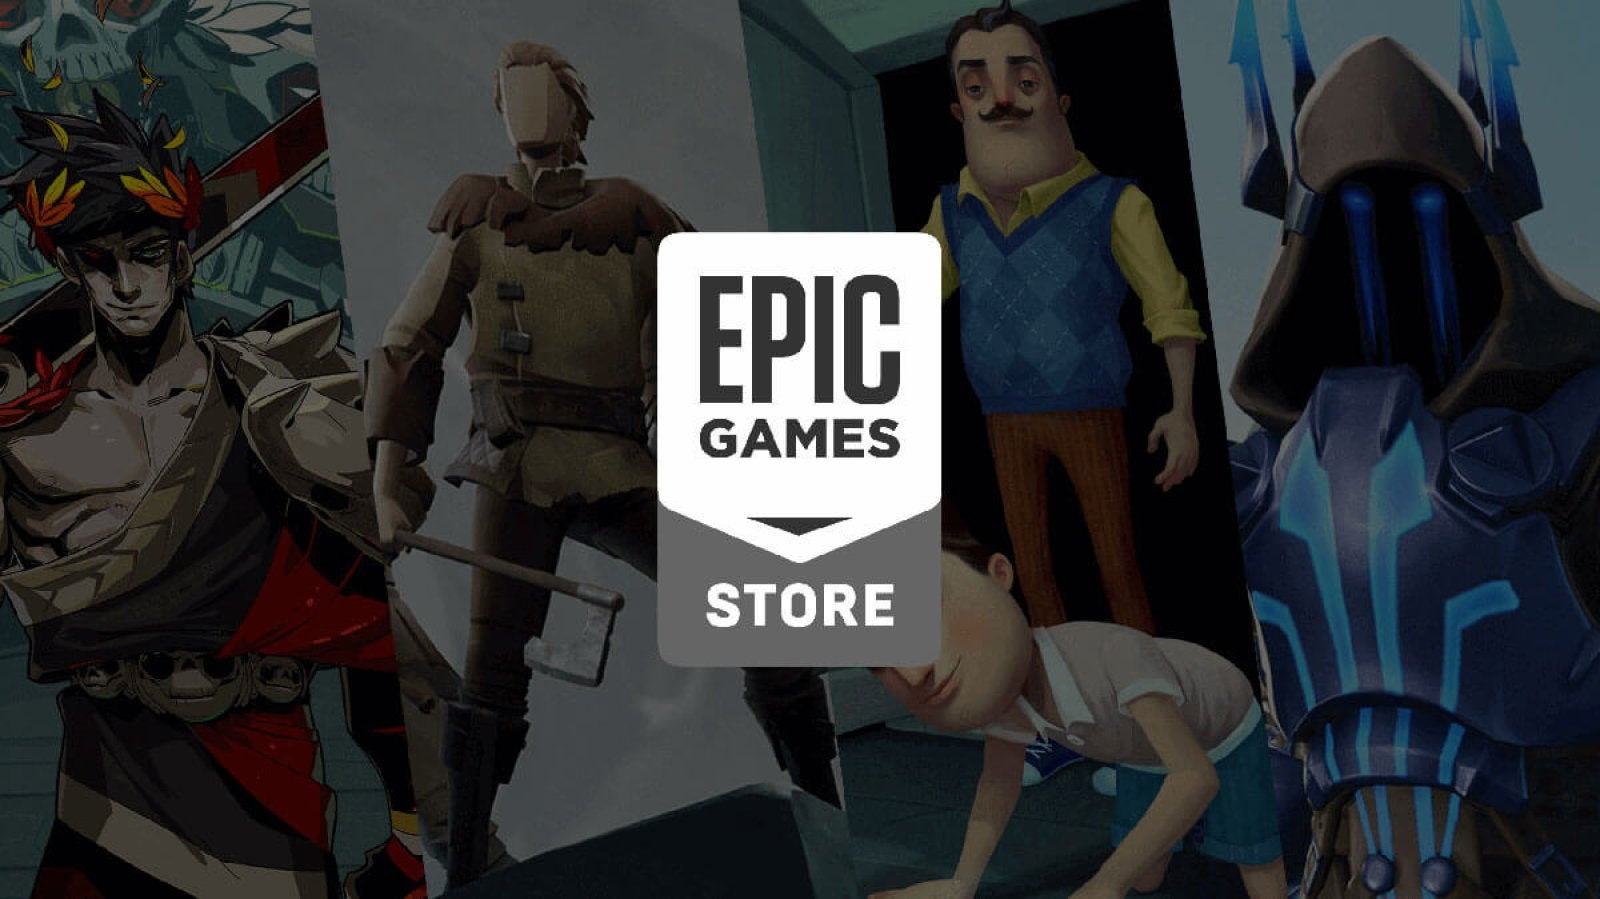 Epic Games Store Development Roadmap Includes Wishlists, Mod Support, Cloud Saves & More